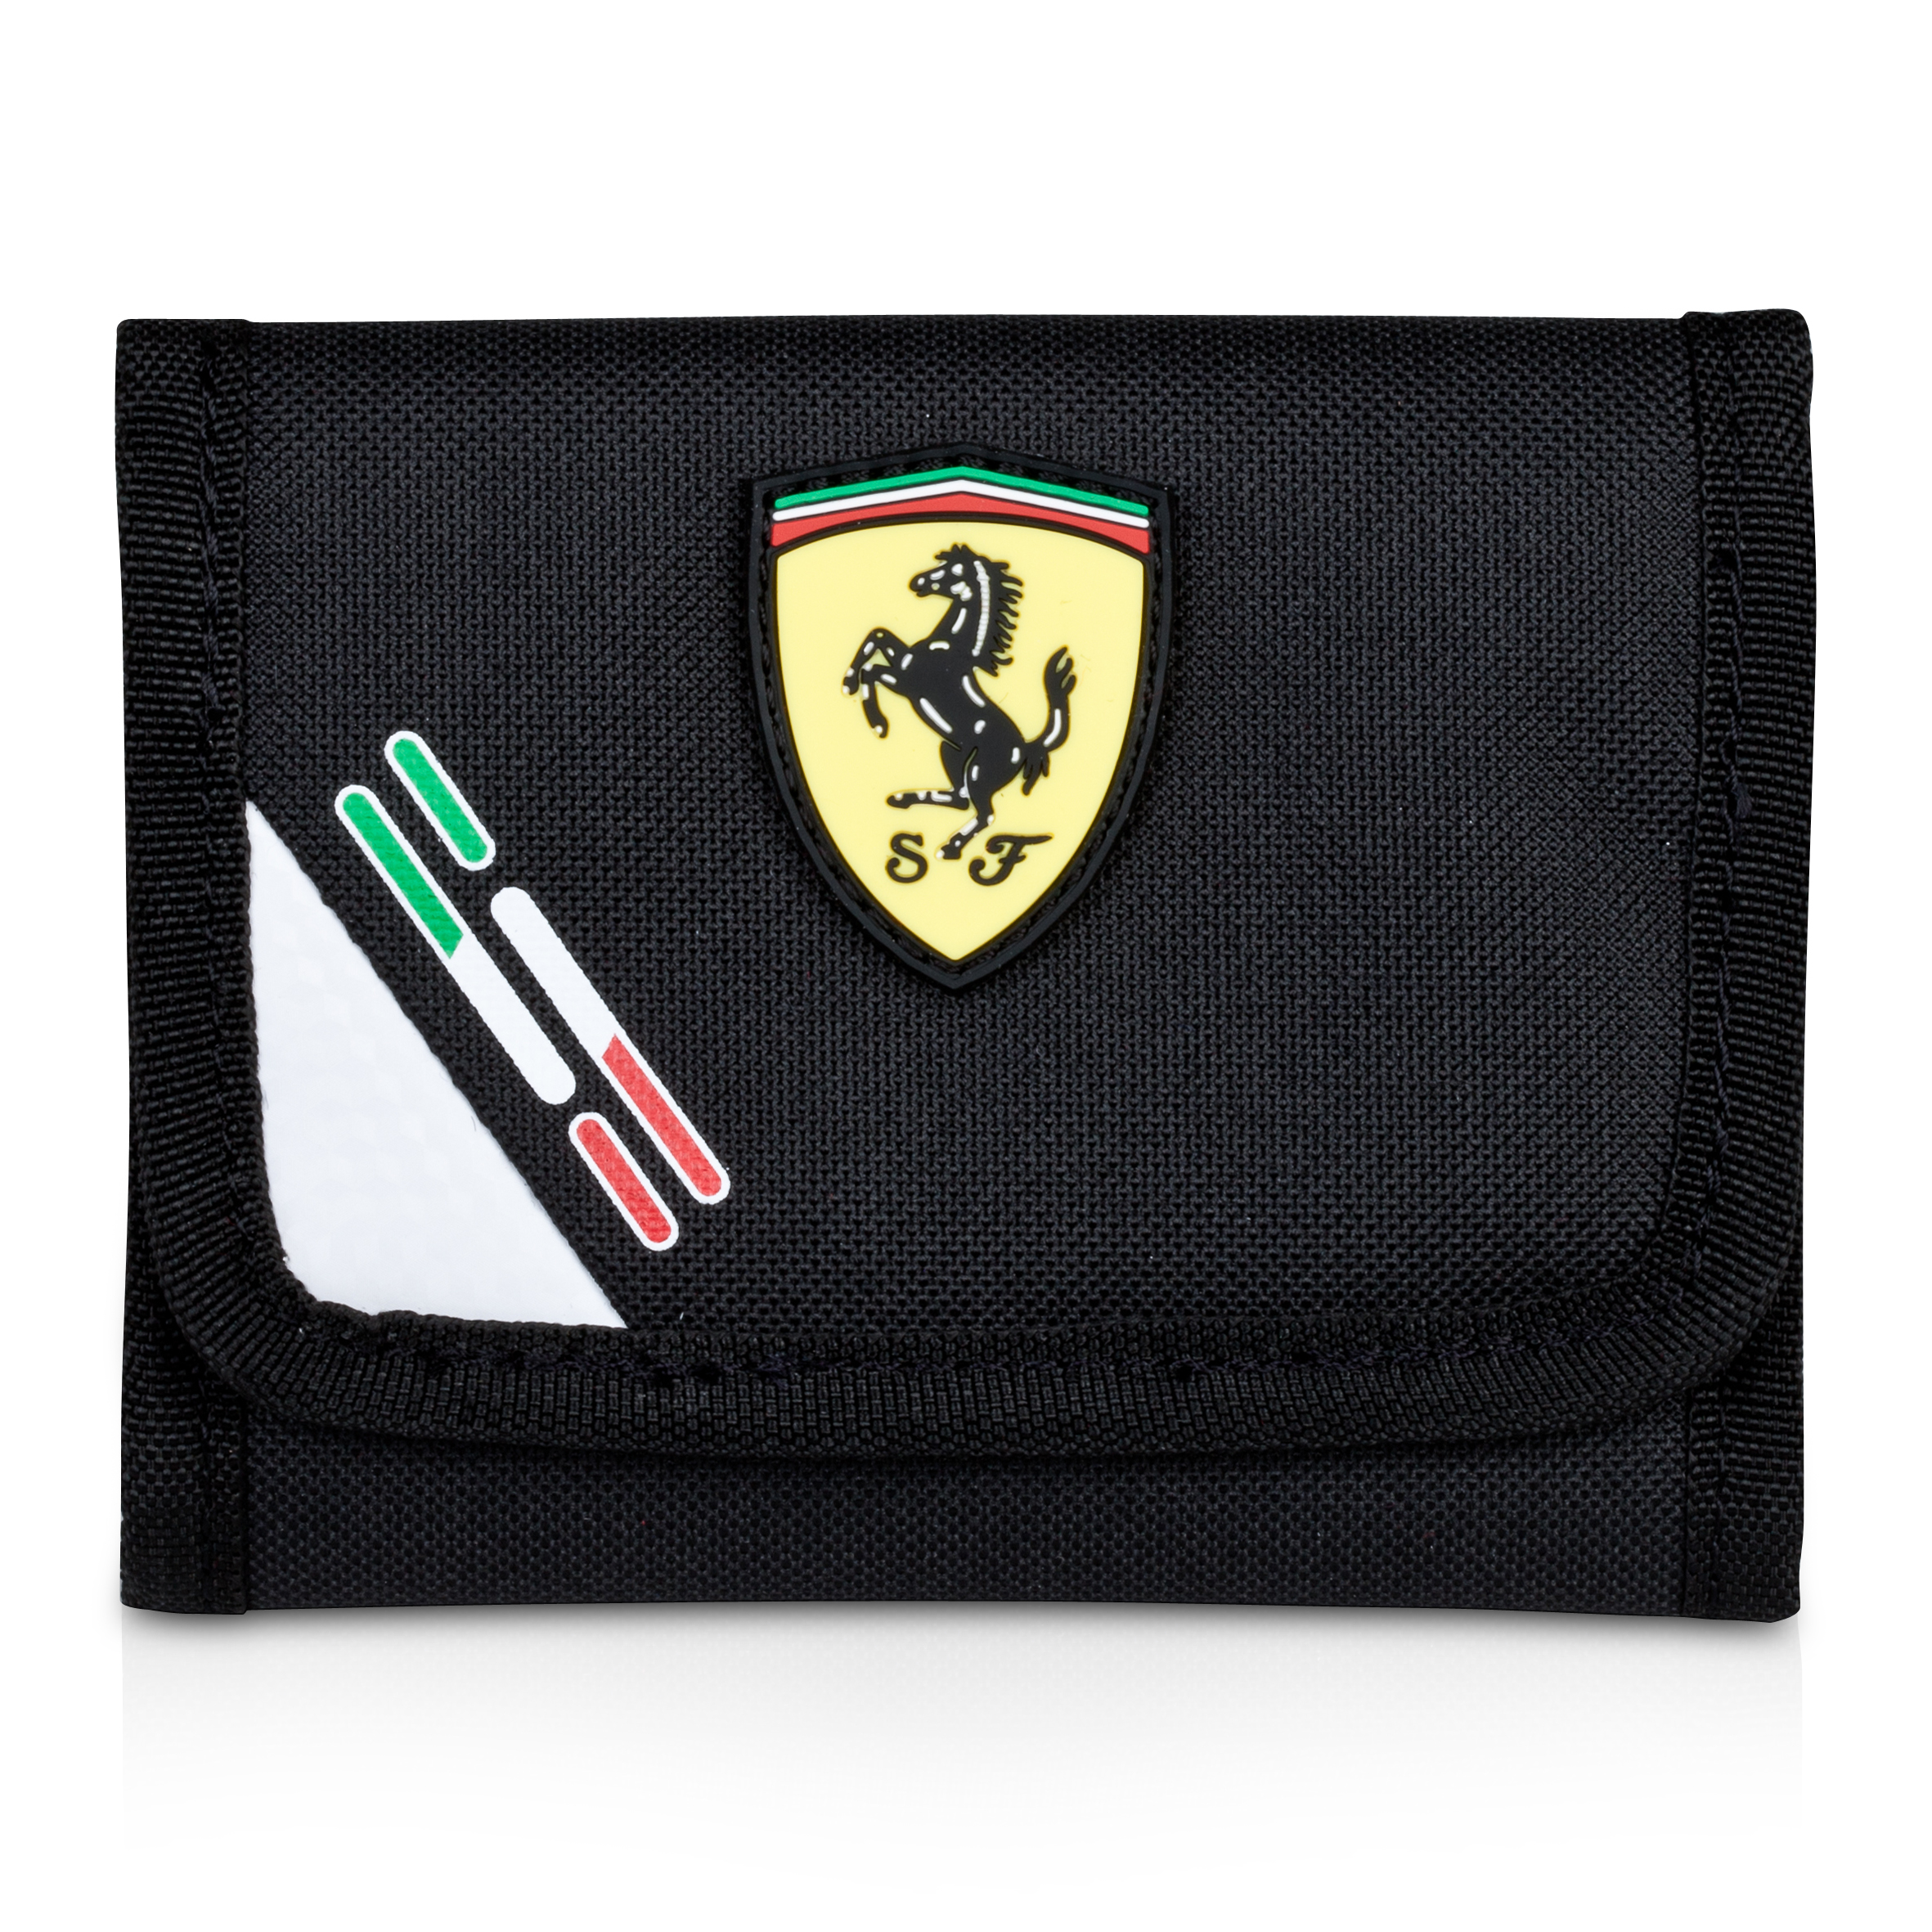 Scuderia Ferrari Replica Wallet - Black/White